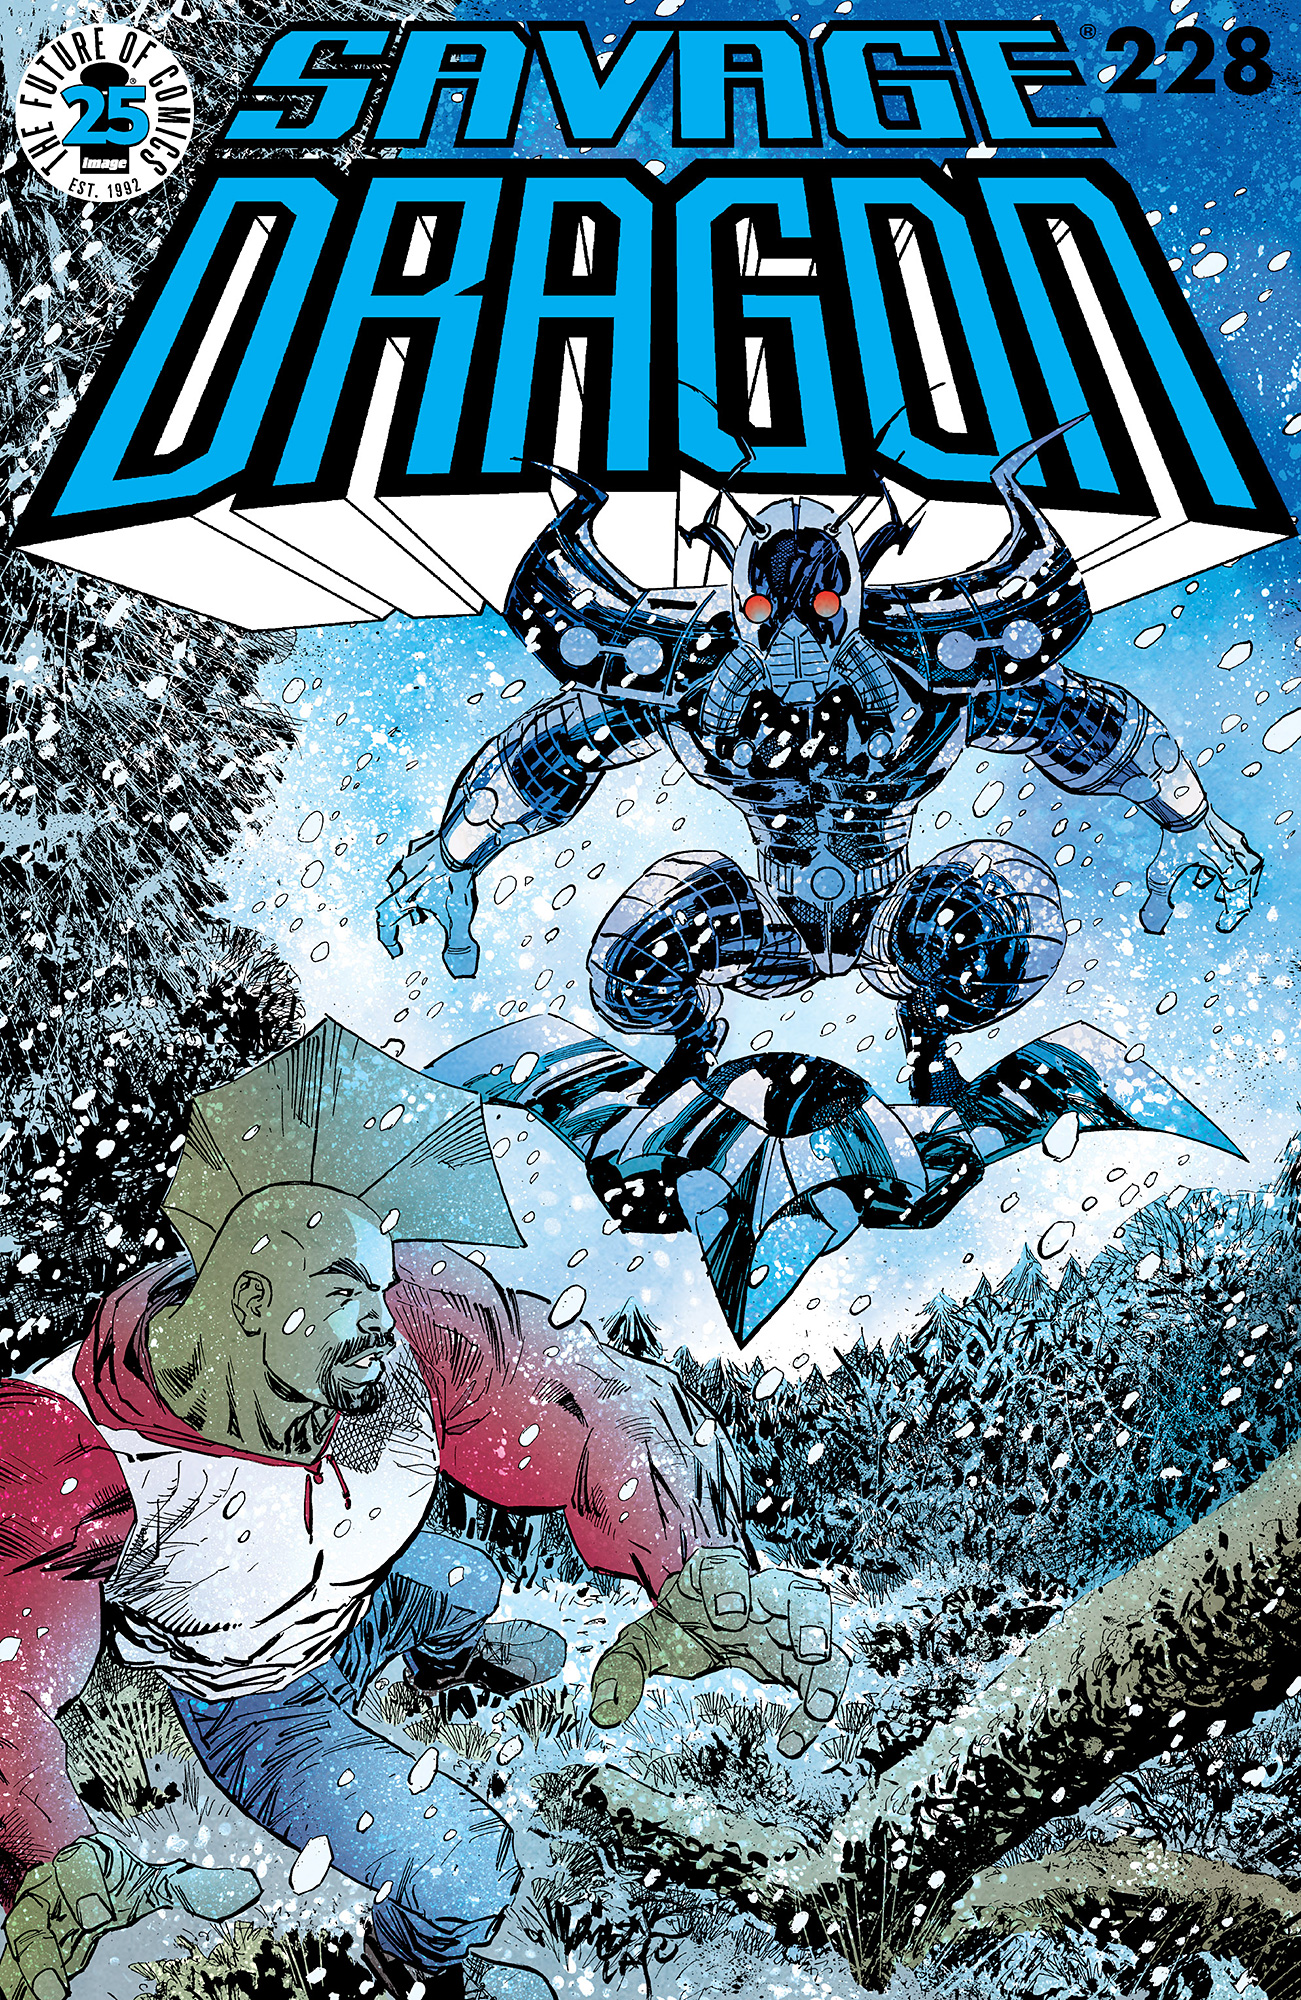 Cover Savage Dragon Vol.2 #228